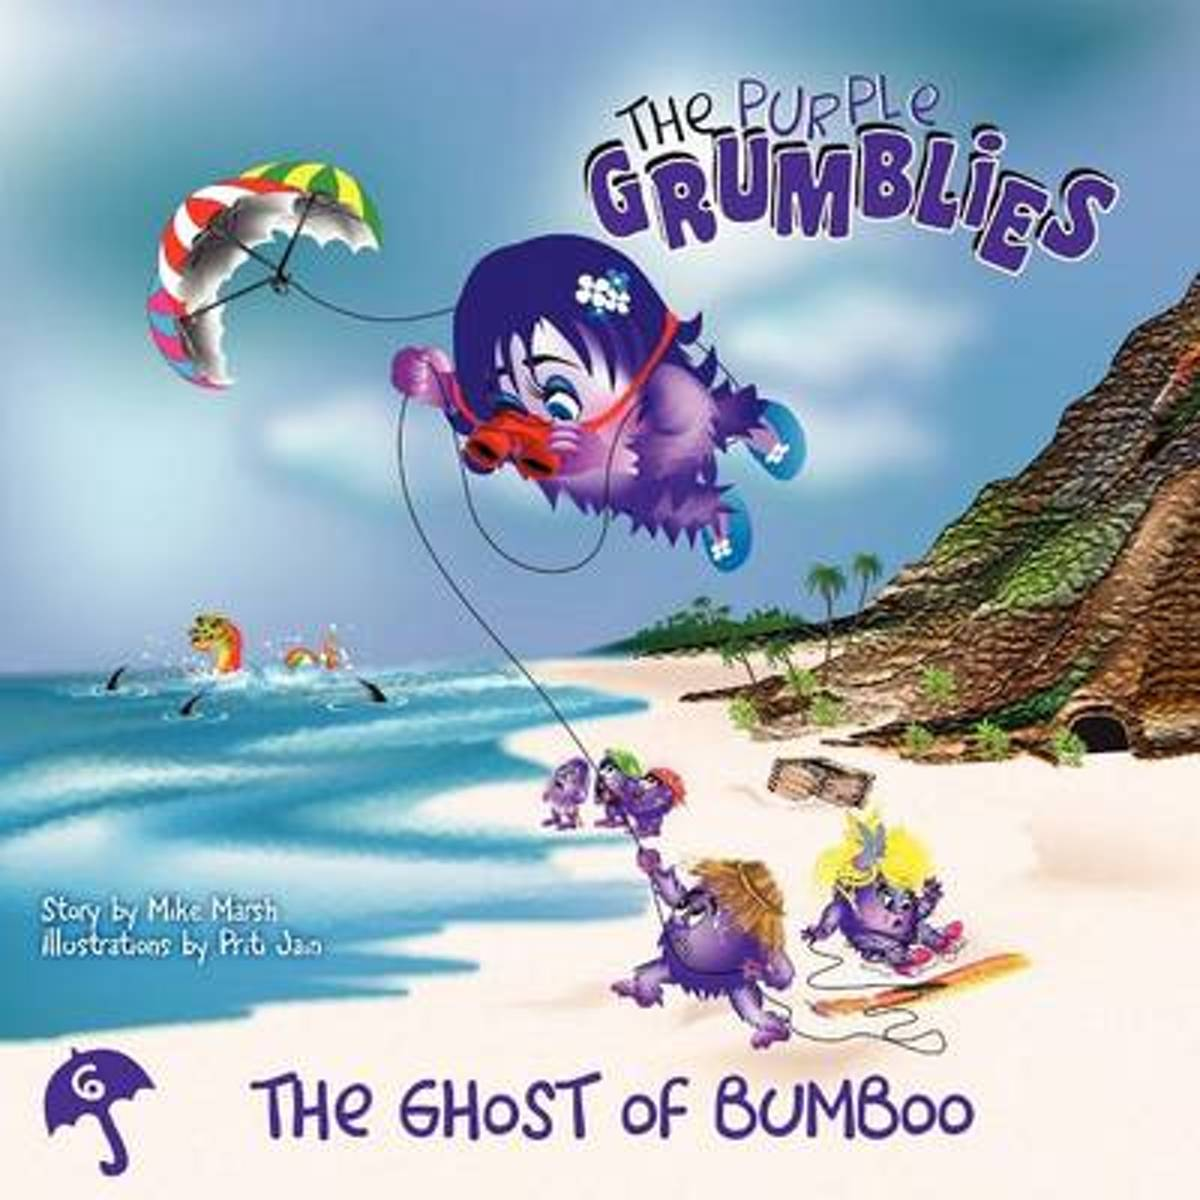 The Ghost of Bumboo